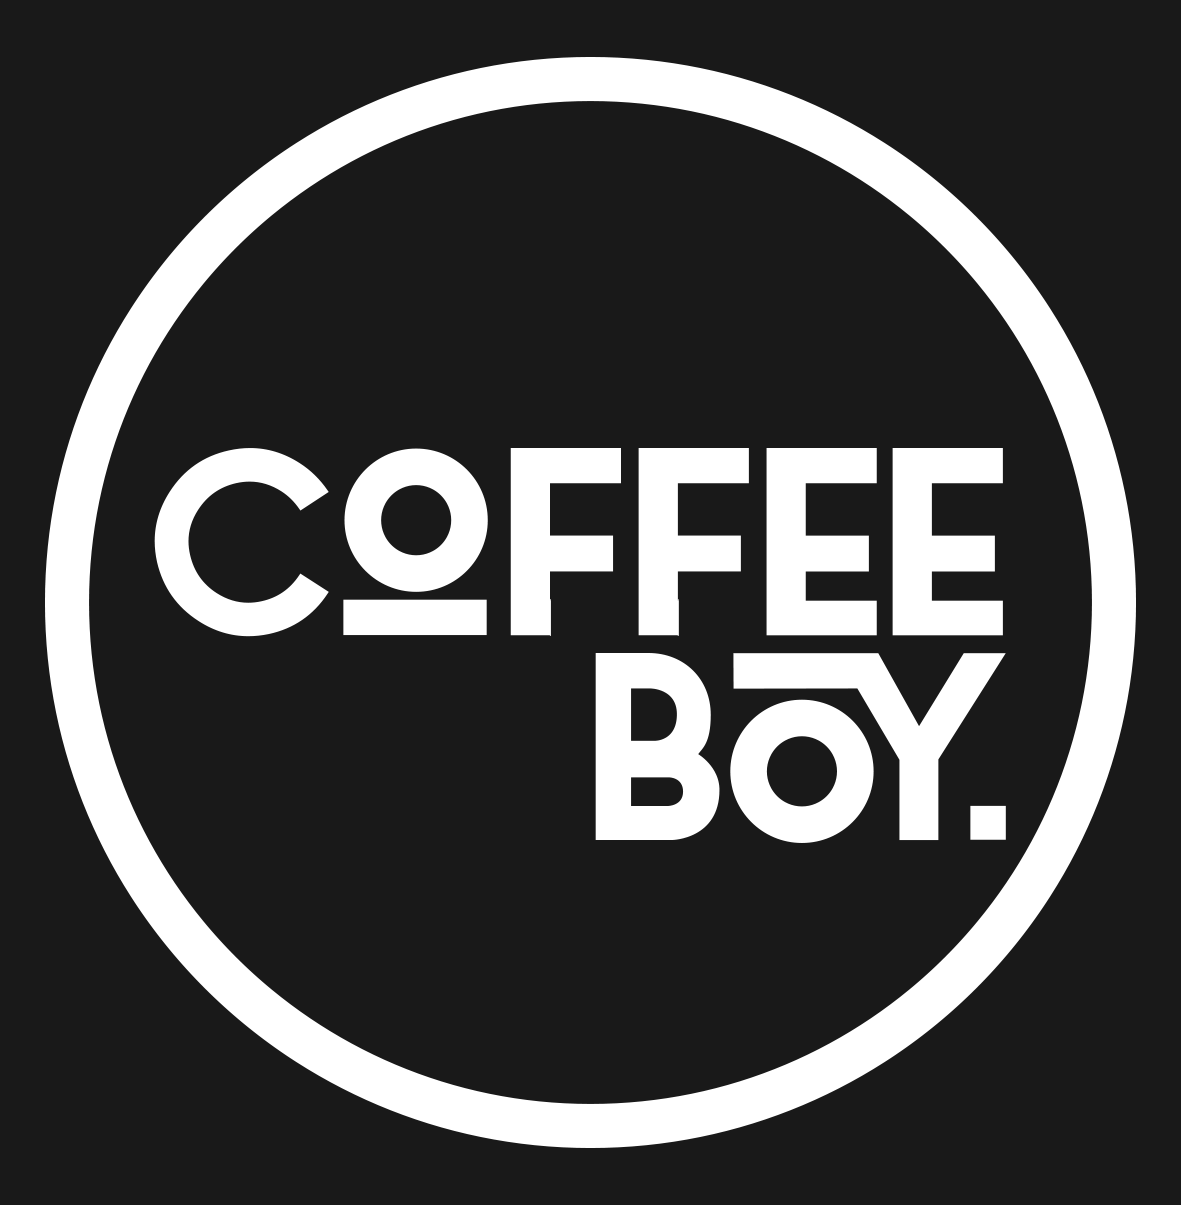 CoffeeBoy franchise